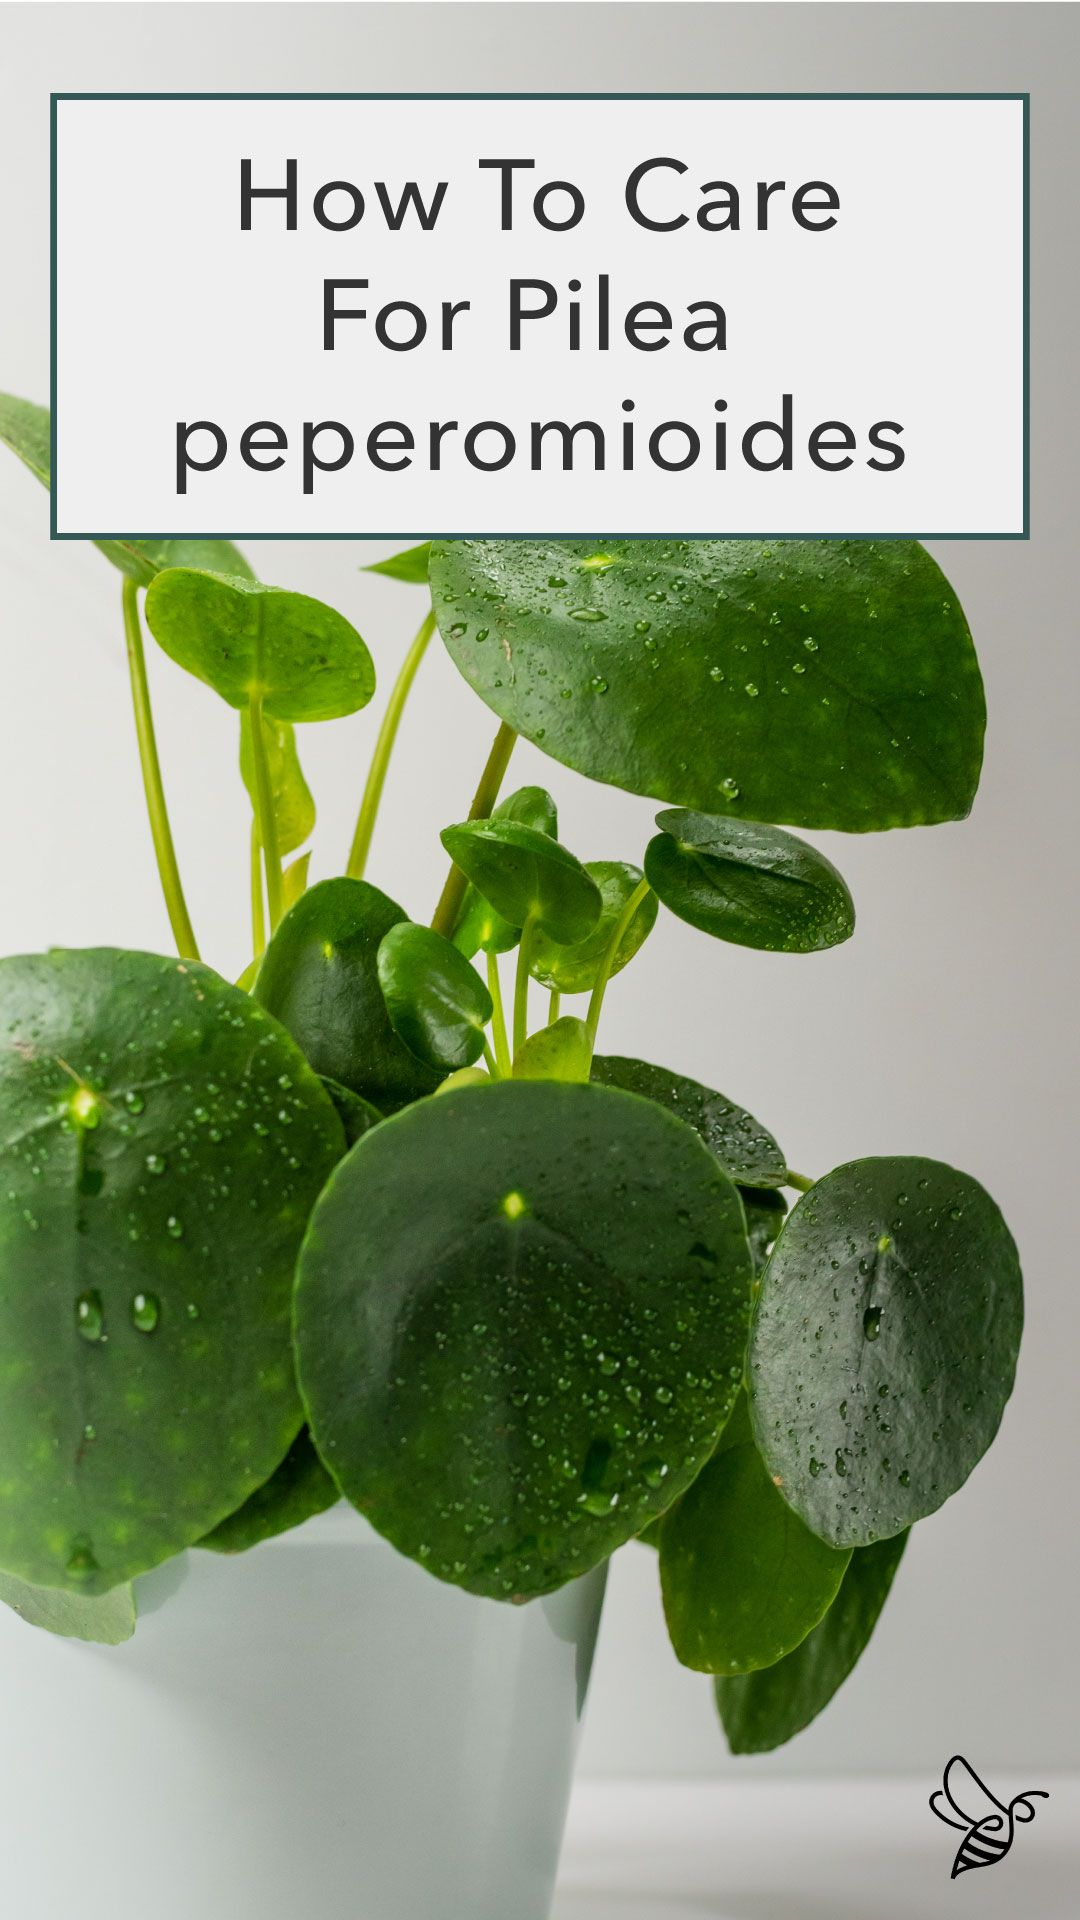 Pilea peperomioides or Chinese Money Plant is actually a succulent!   Extremely popular as it is easy to propagate (which means more plants for you!)   It prefers a humid environment and bright, indirect light. Remember to rotate the plant occasionally as the leaves will grow towards the light!  #pilea #Pileapeperomioides #moneyplant #succulent #houseplant #easyhouseplants #urbanjungle #indoorplants #tropicalplants #lowmaintenanceplants #pileacare #planttips